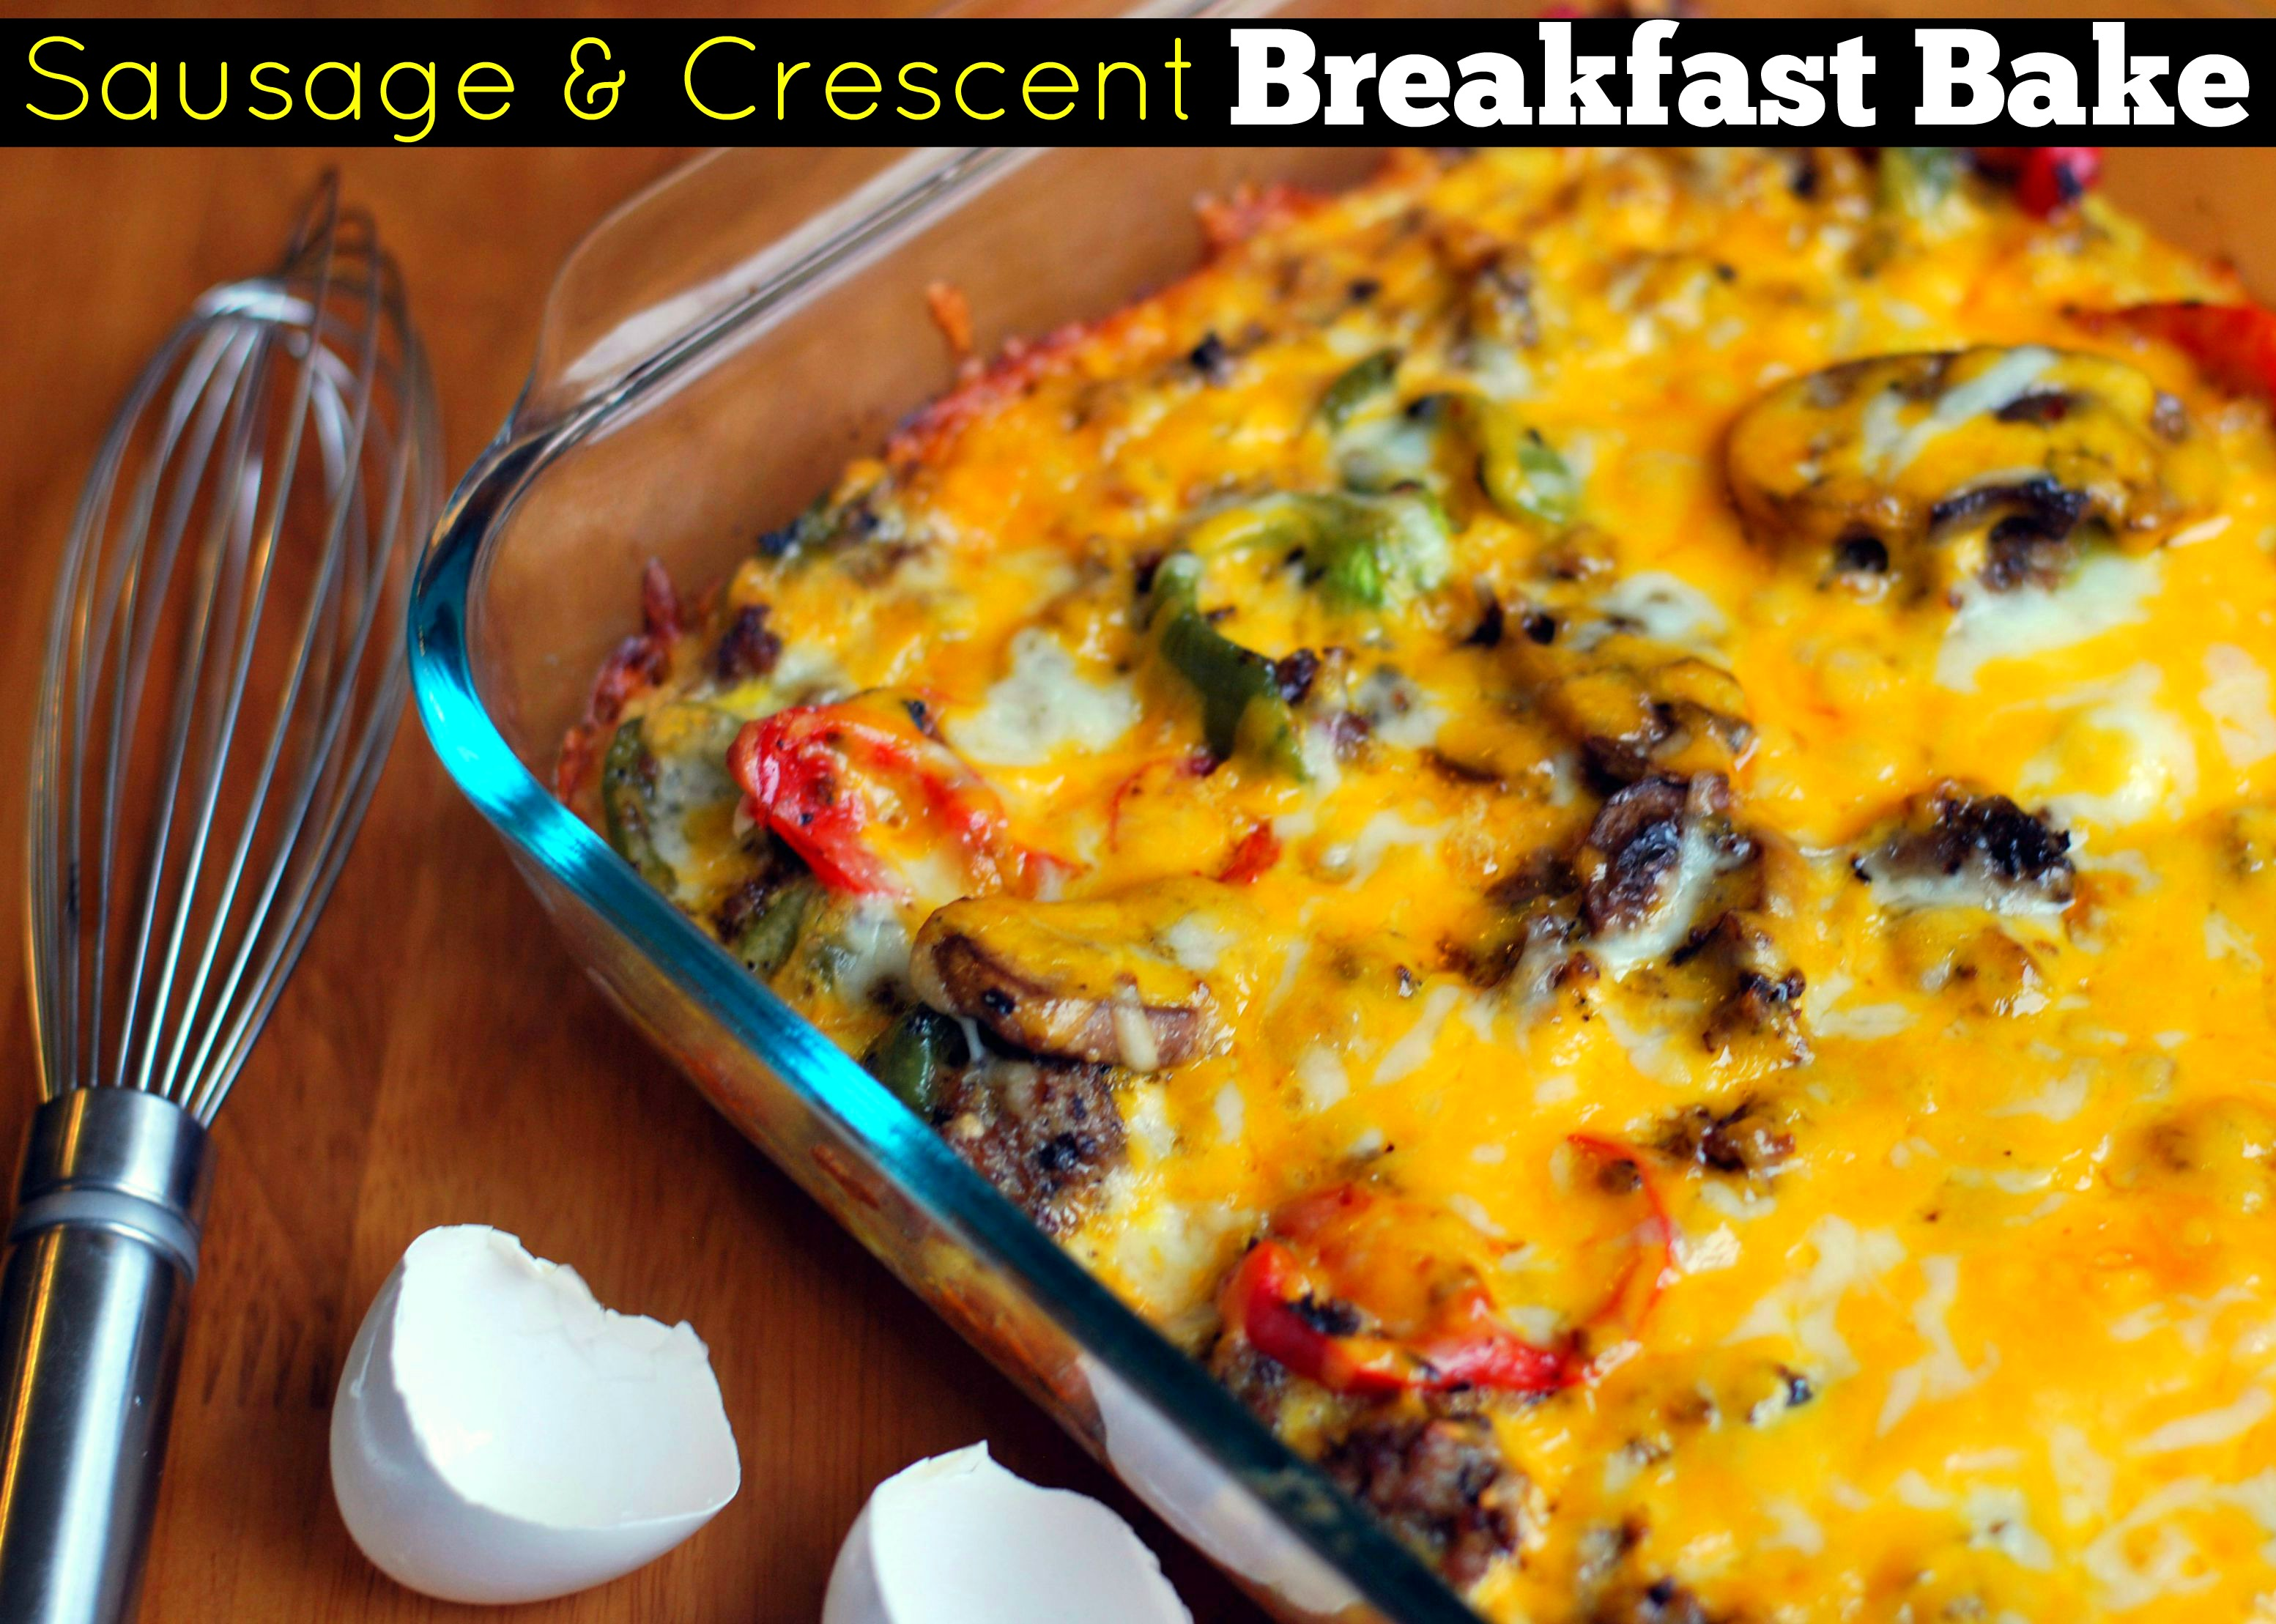 Sausage & Crescent Breakfast Bake